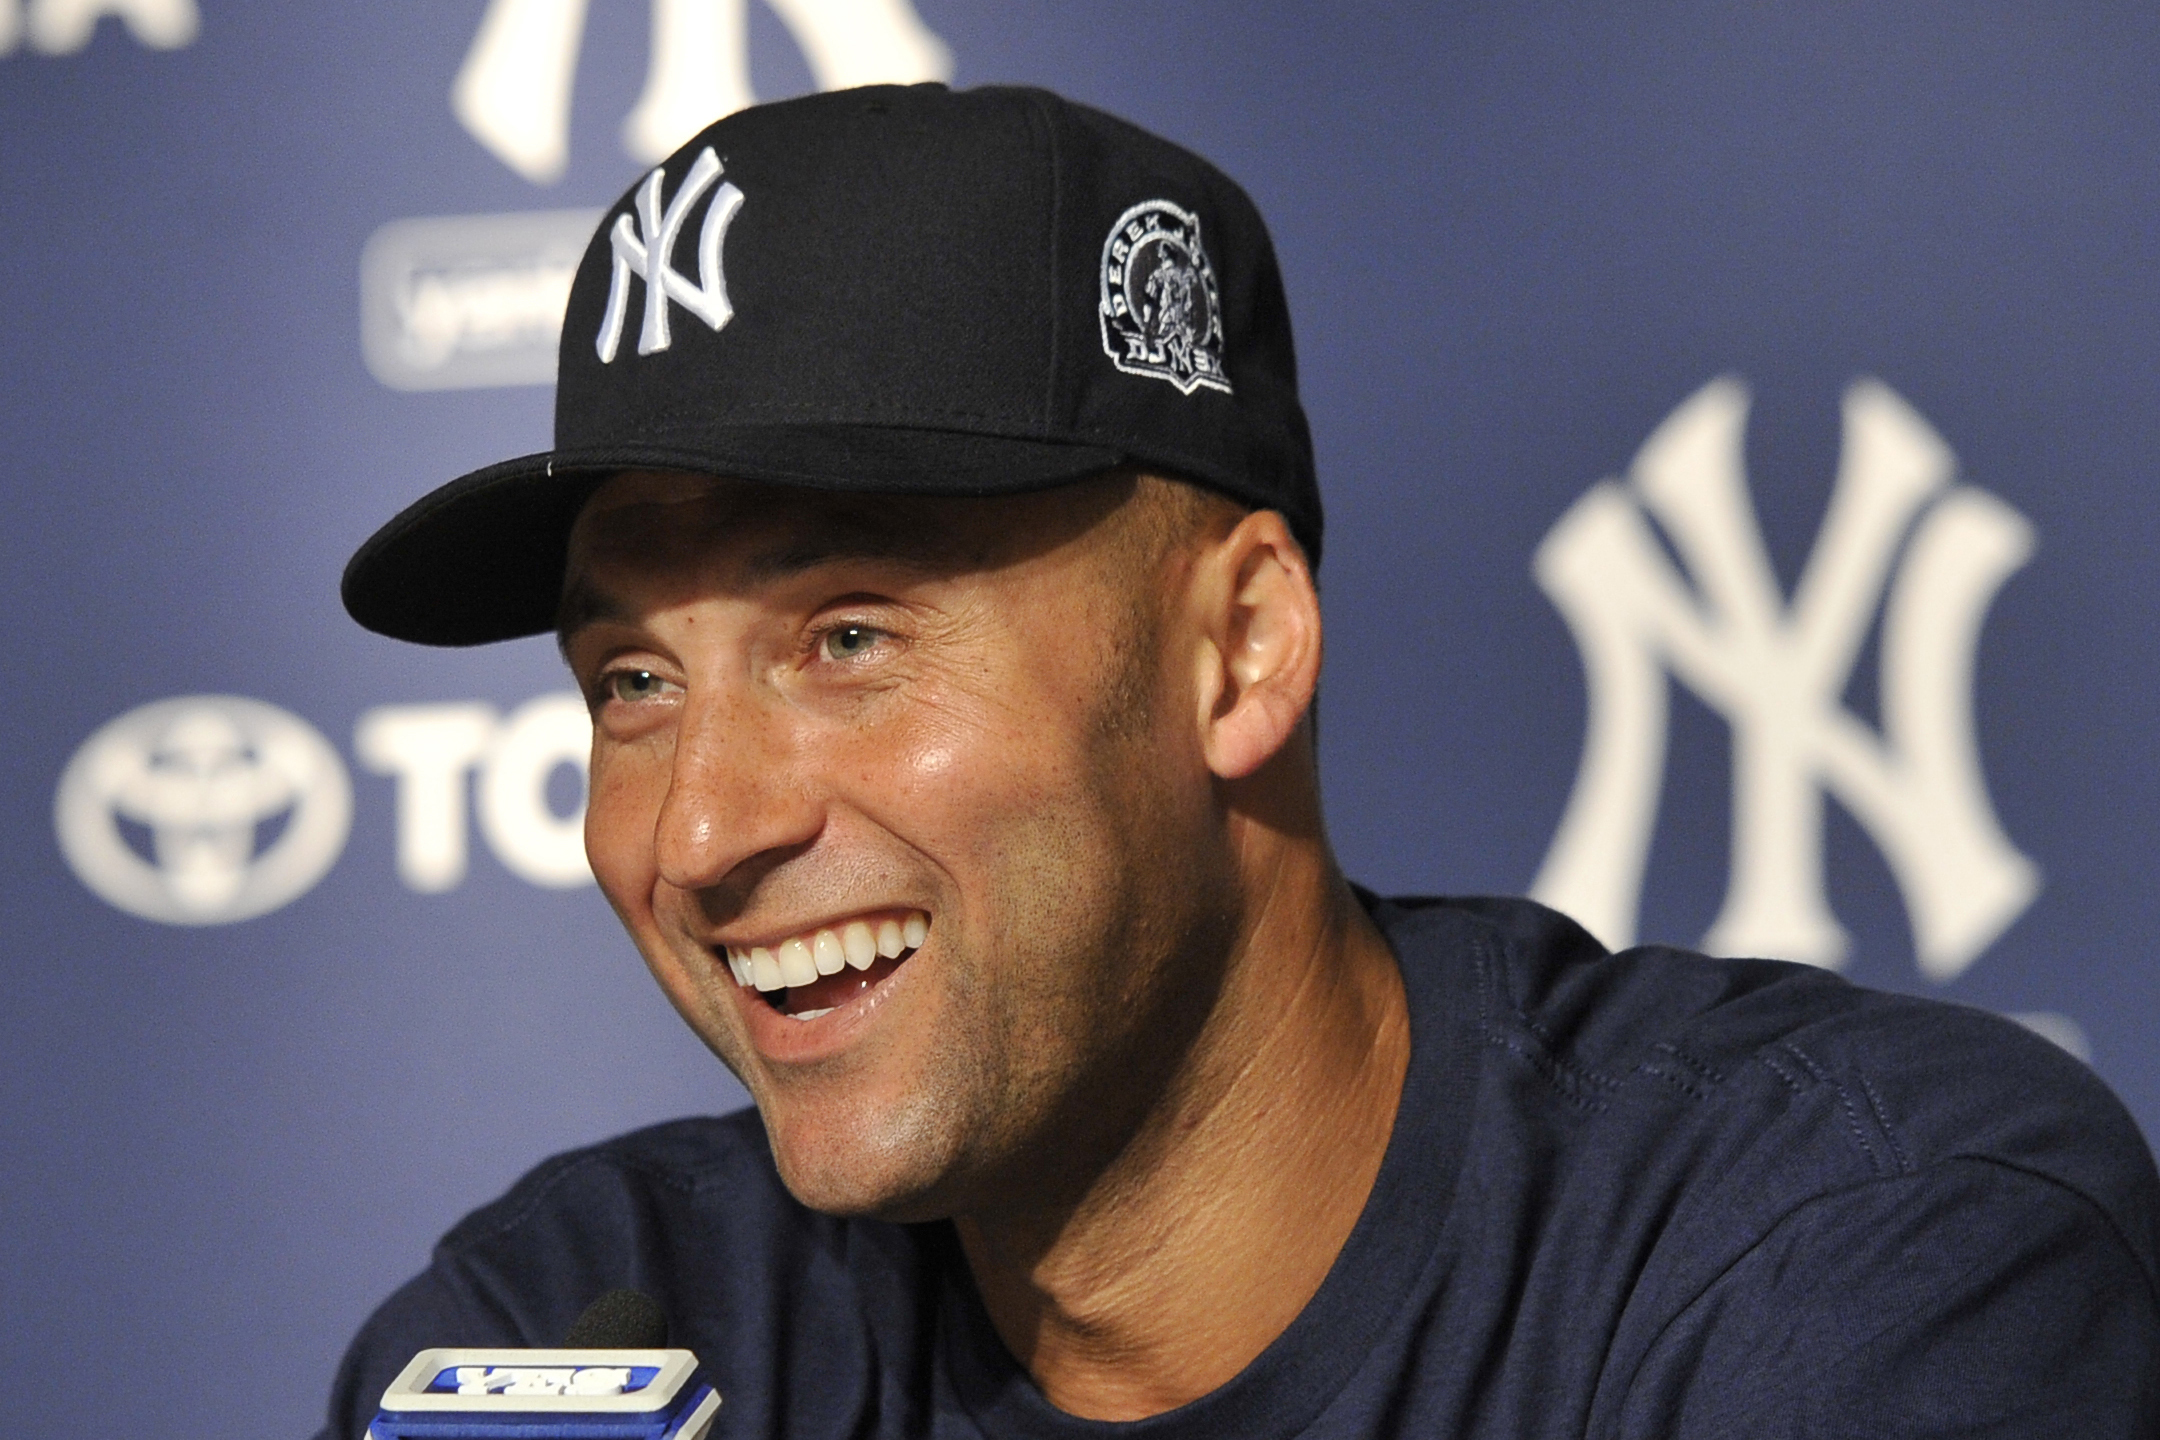 New York Yankees' Derek Jeter smiles as he speaks about his 3,000th career hit at a press conference after a baseball game against the Tampa Bay Rays, at Yankee Stadium in New York, N.Y., on July 9, 2011.